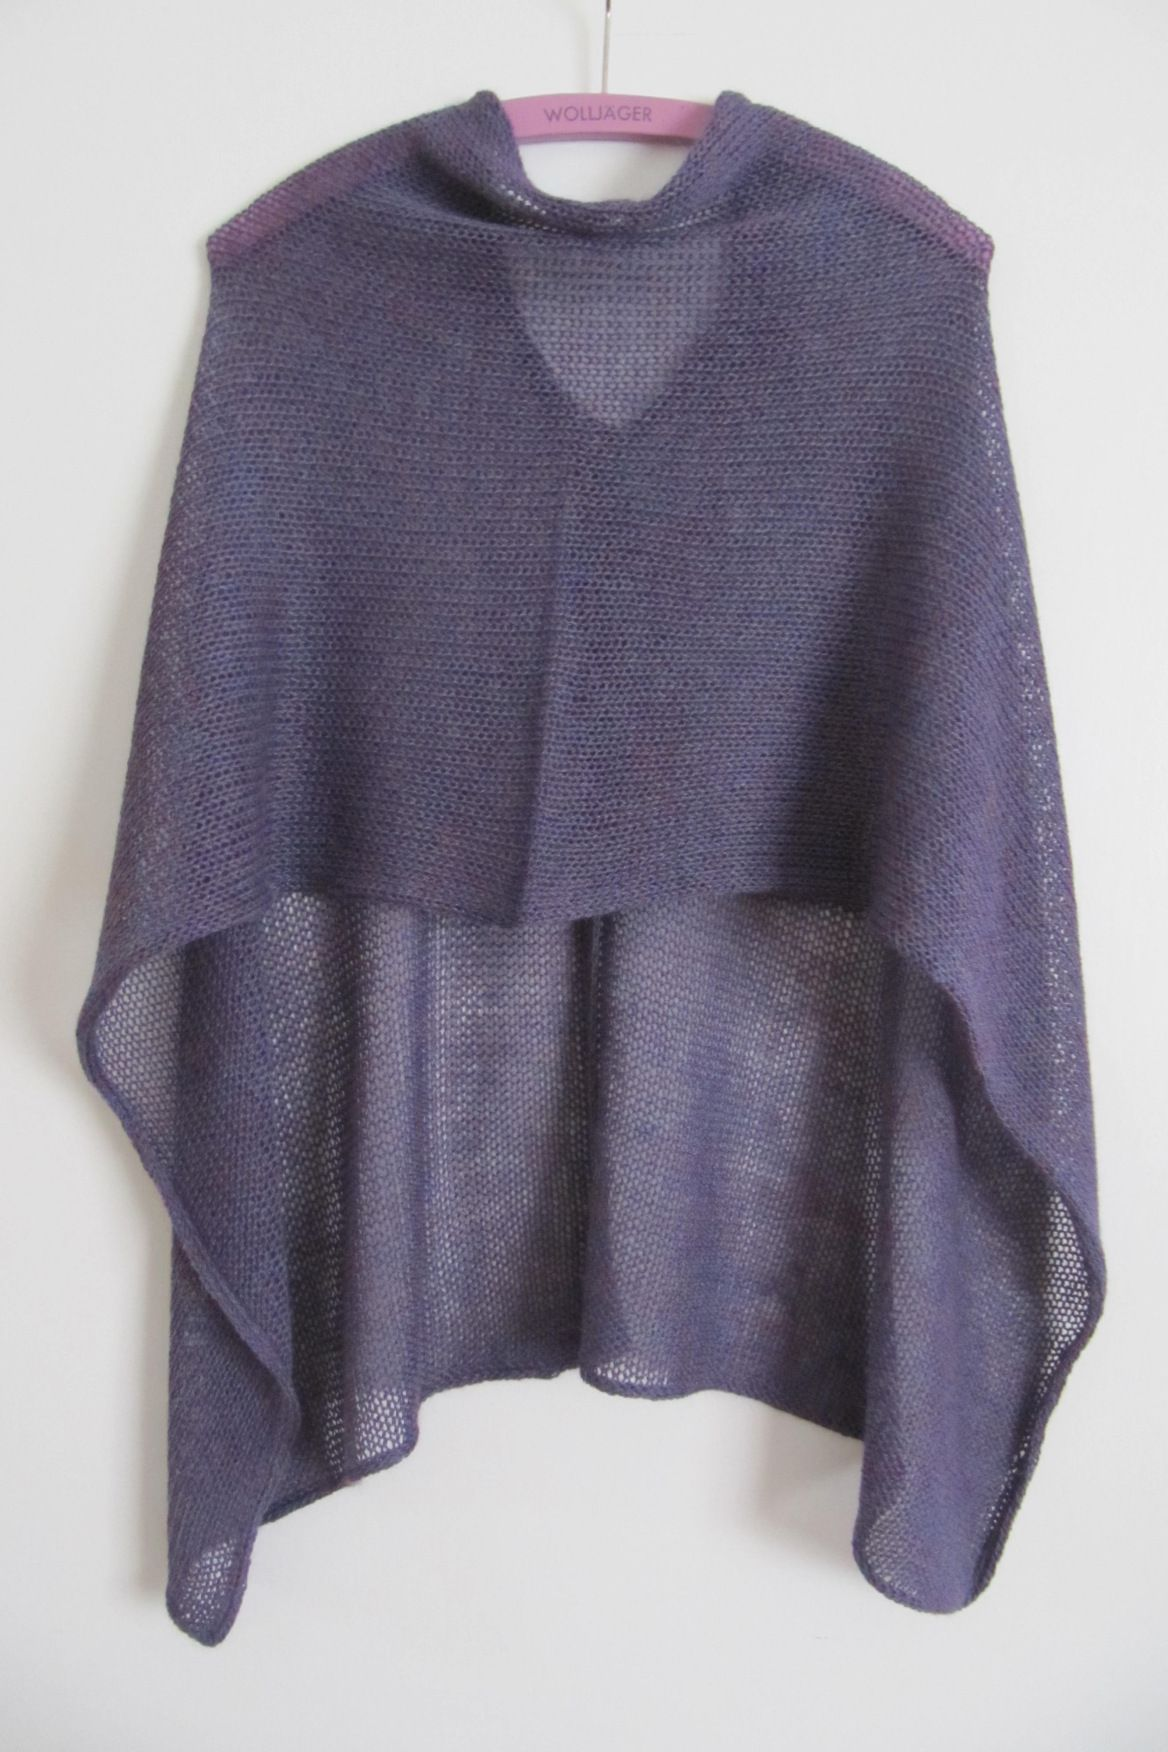 Very easy Poncho | Pinterest | Ponchos, Patterns and Knitting patterns